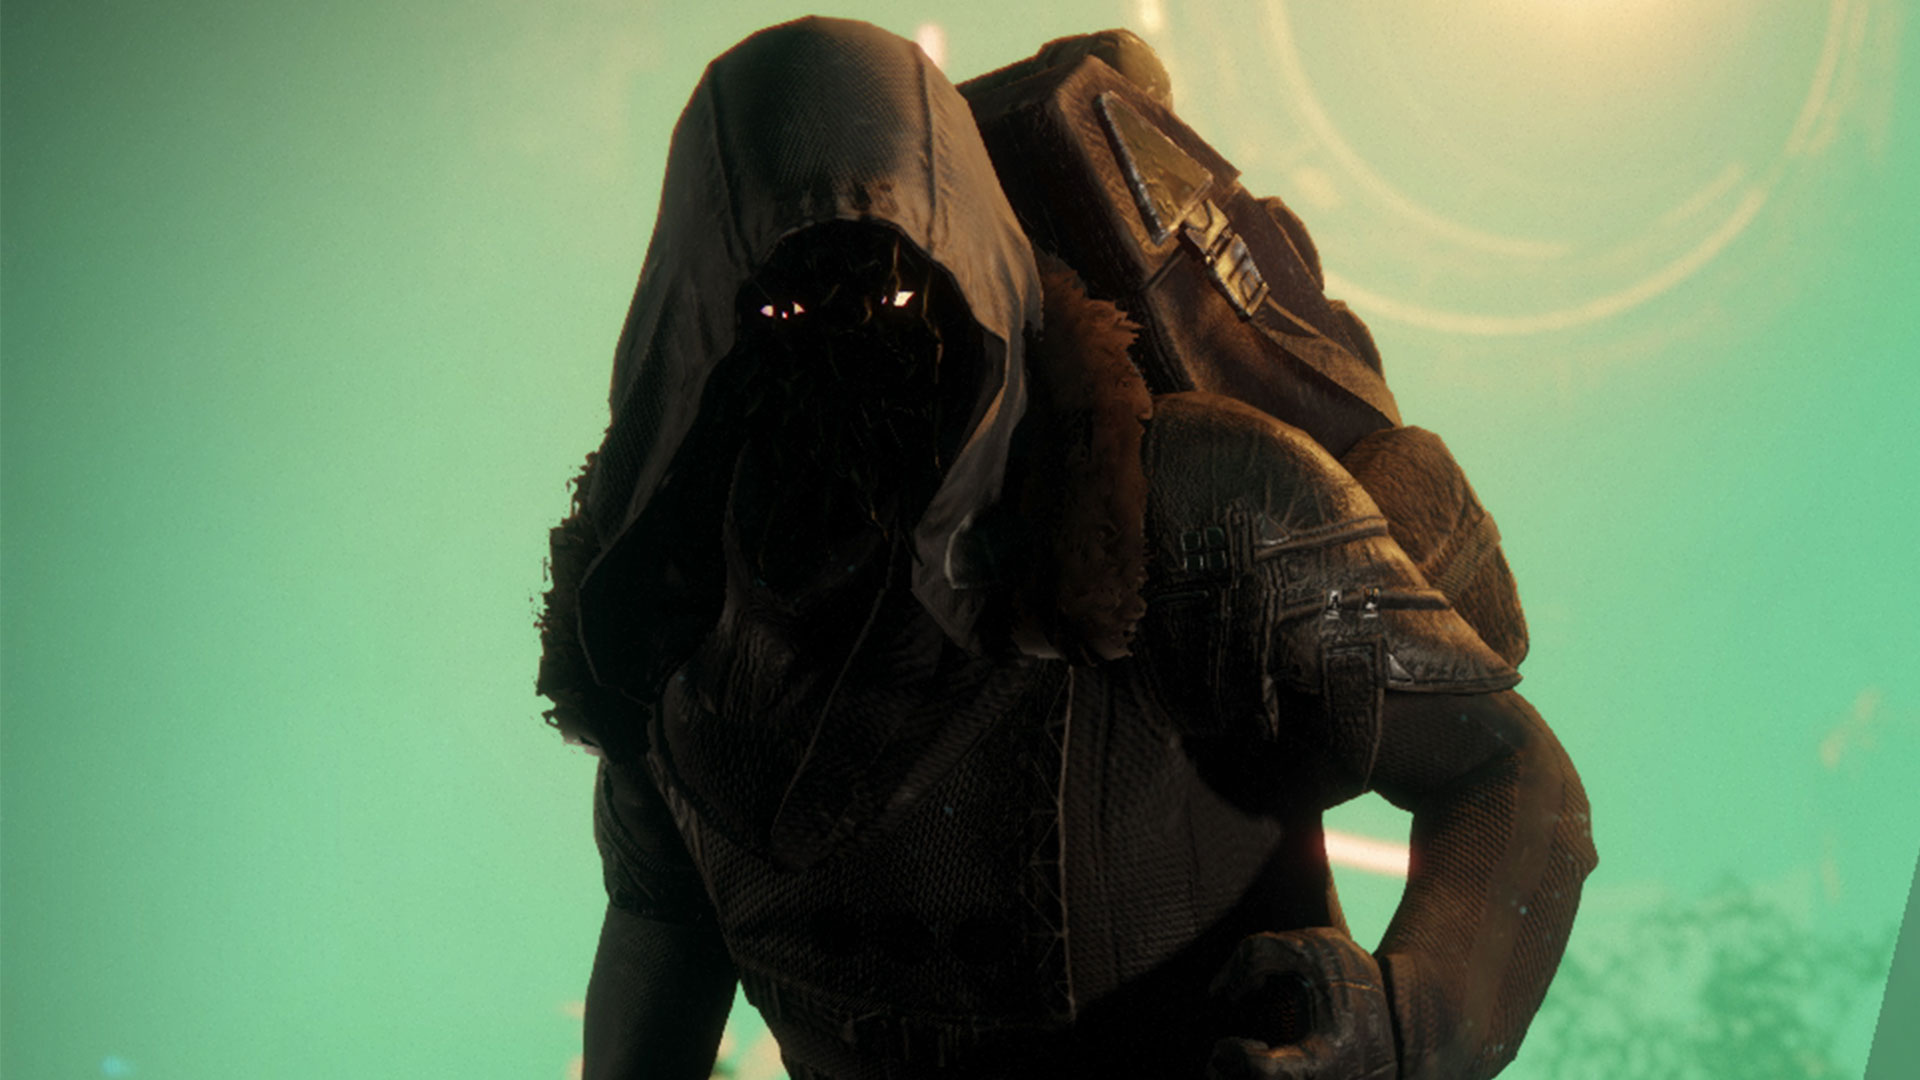 Destiny 2 Xur location and items, March 22-25